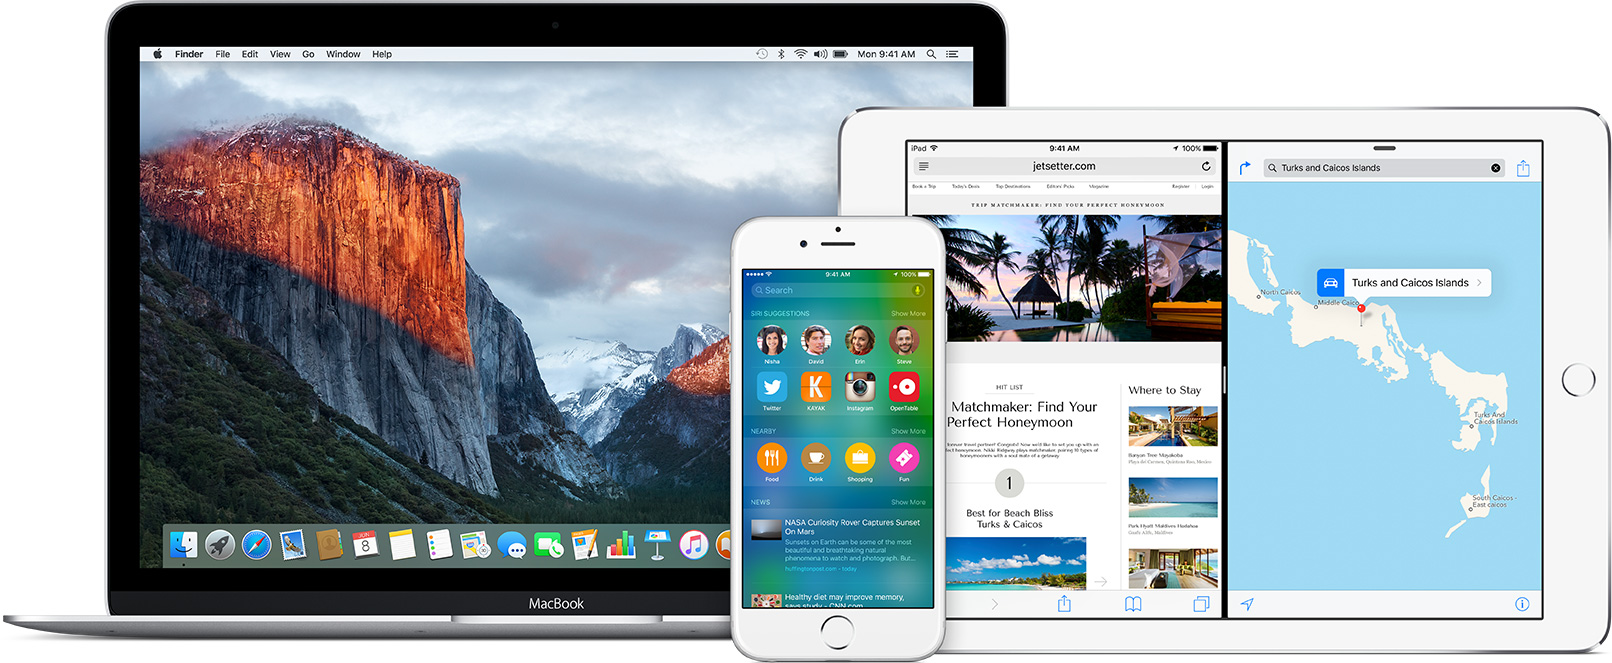 Versões beta do OS X El Capitan 10.11 e do iOS 9